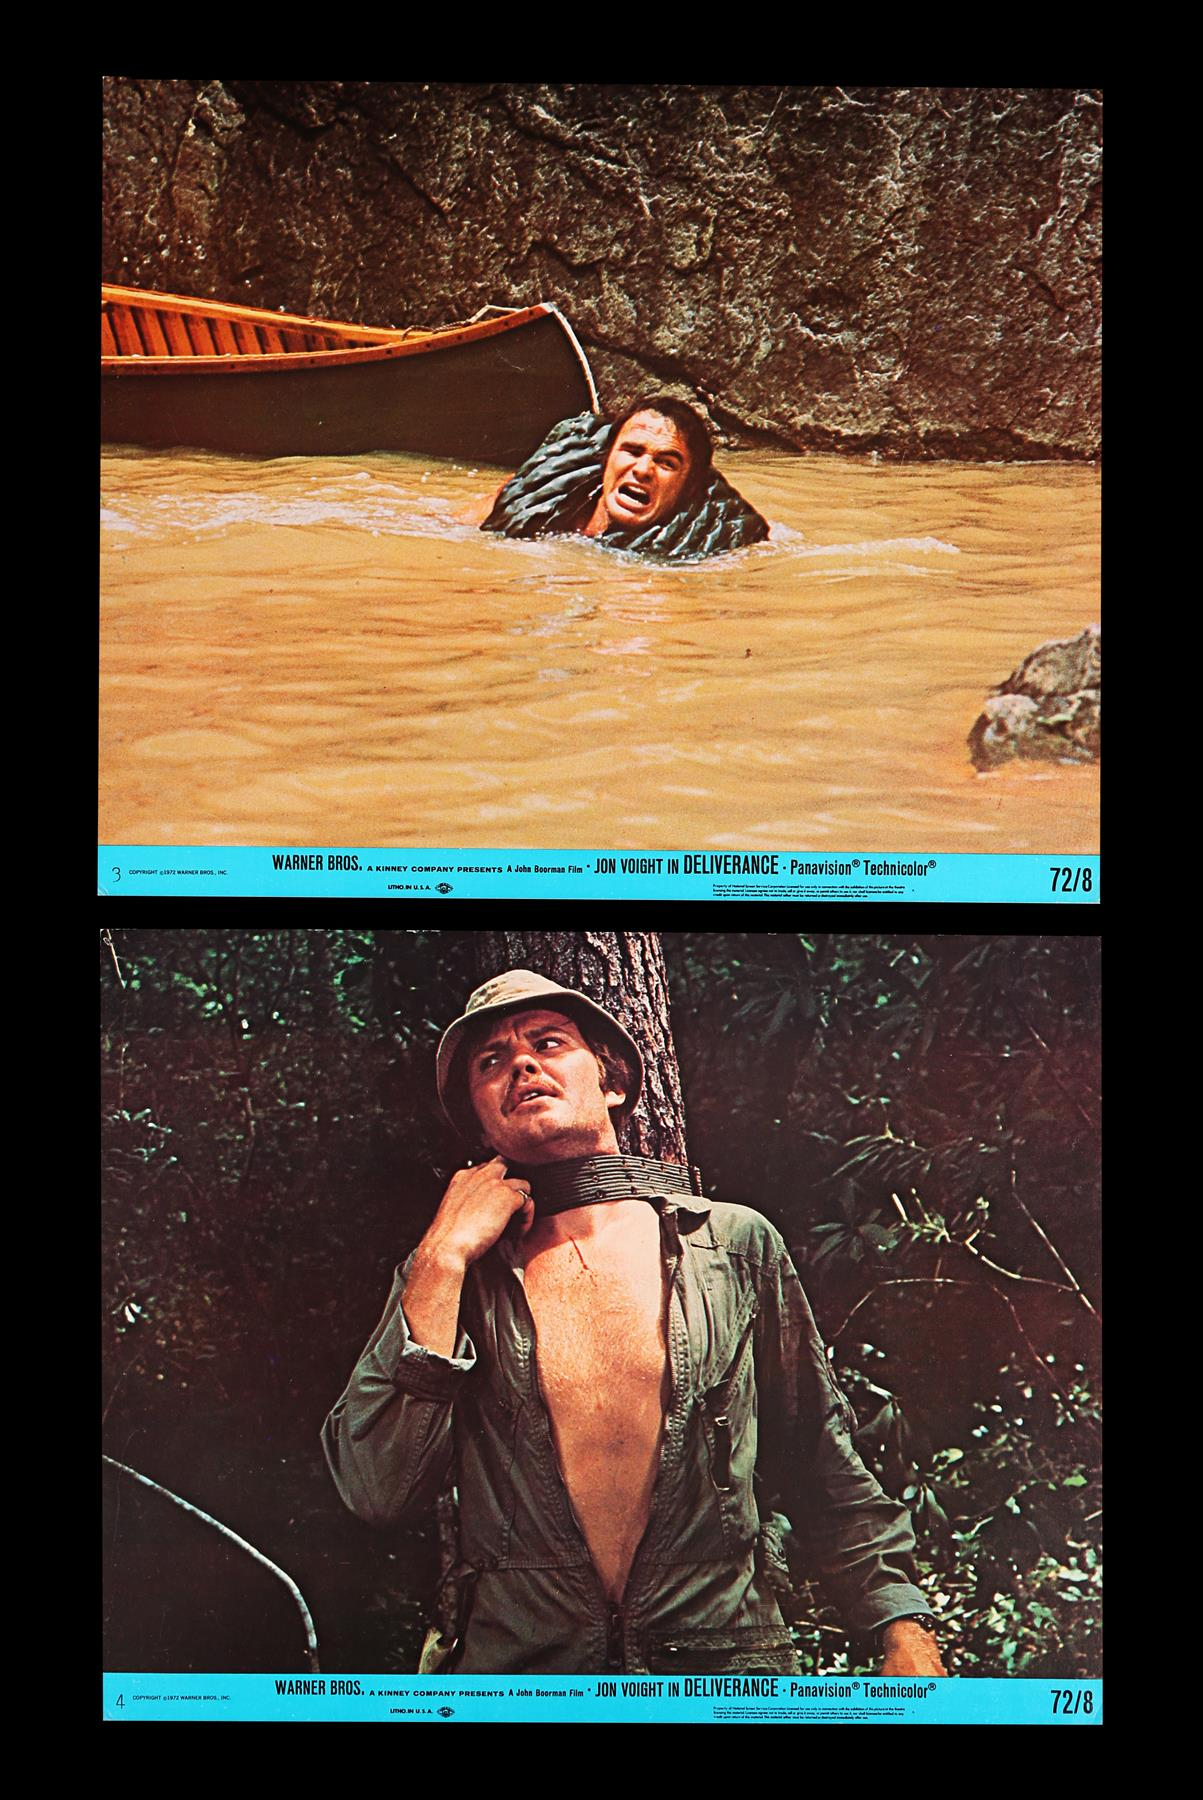 DELIVERANCE (1972), THE ENFORCER (1977) - Two Sets of US Front of House Lobby Cards, 1972, 1977 - Image 4 of 9